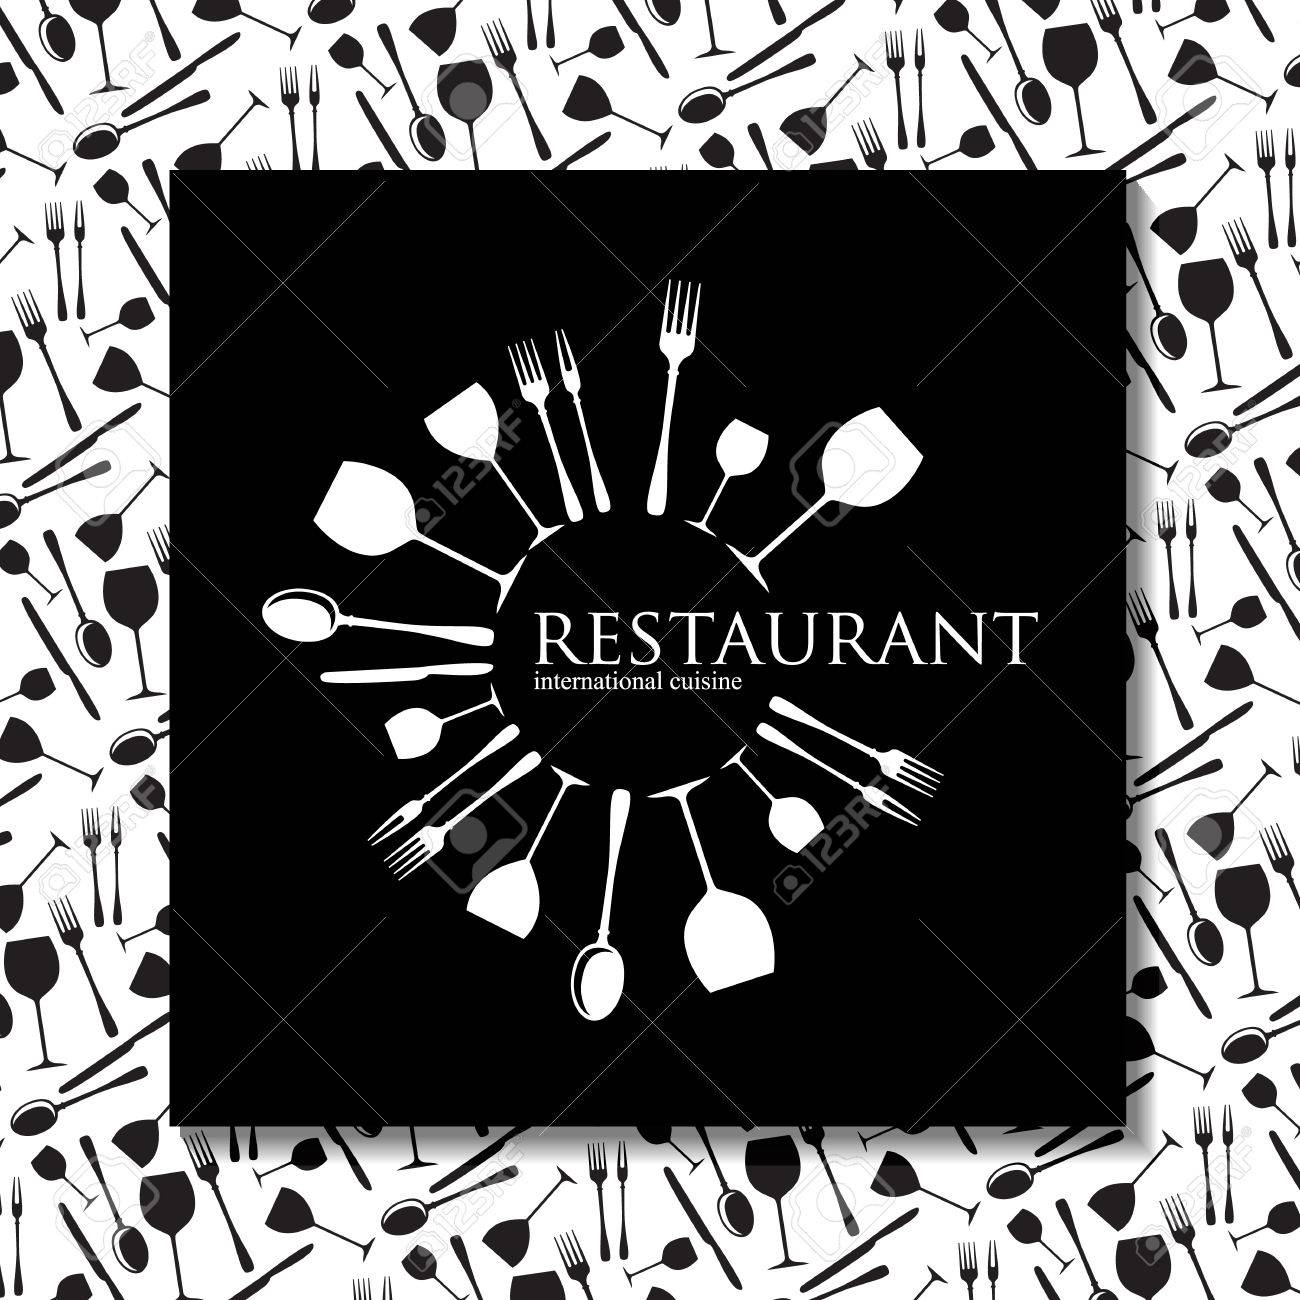 restaurant ideas images & stock pictures. royalty free restaurant